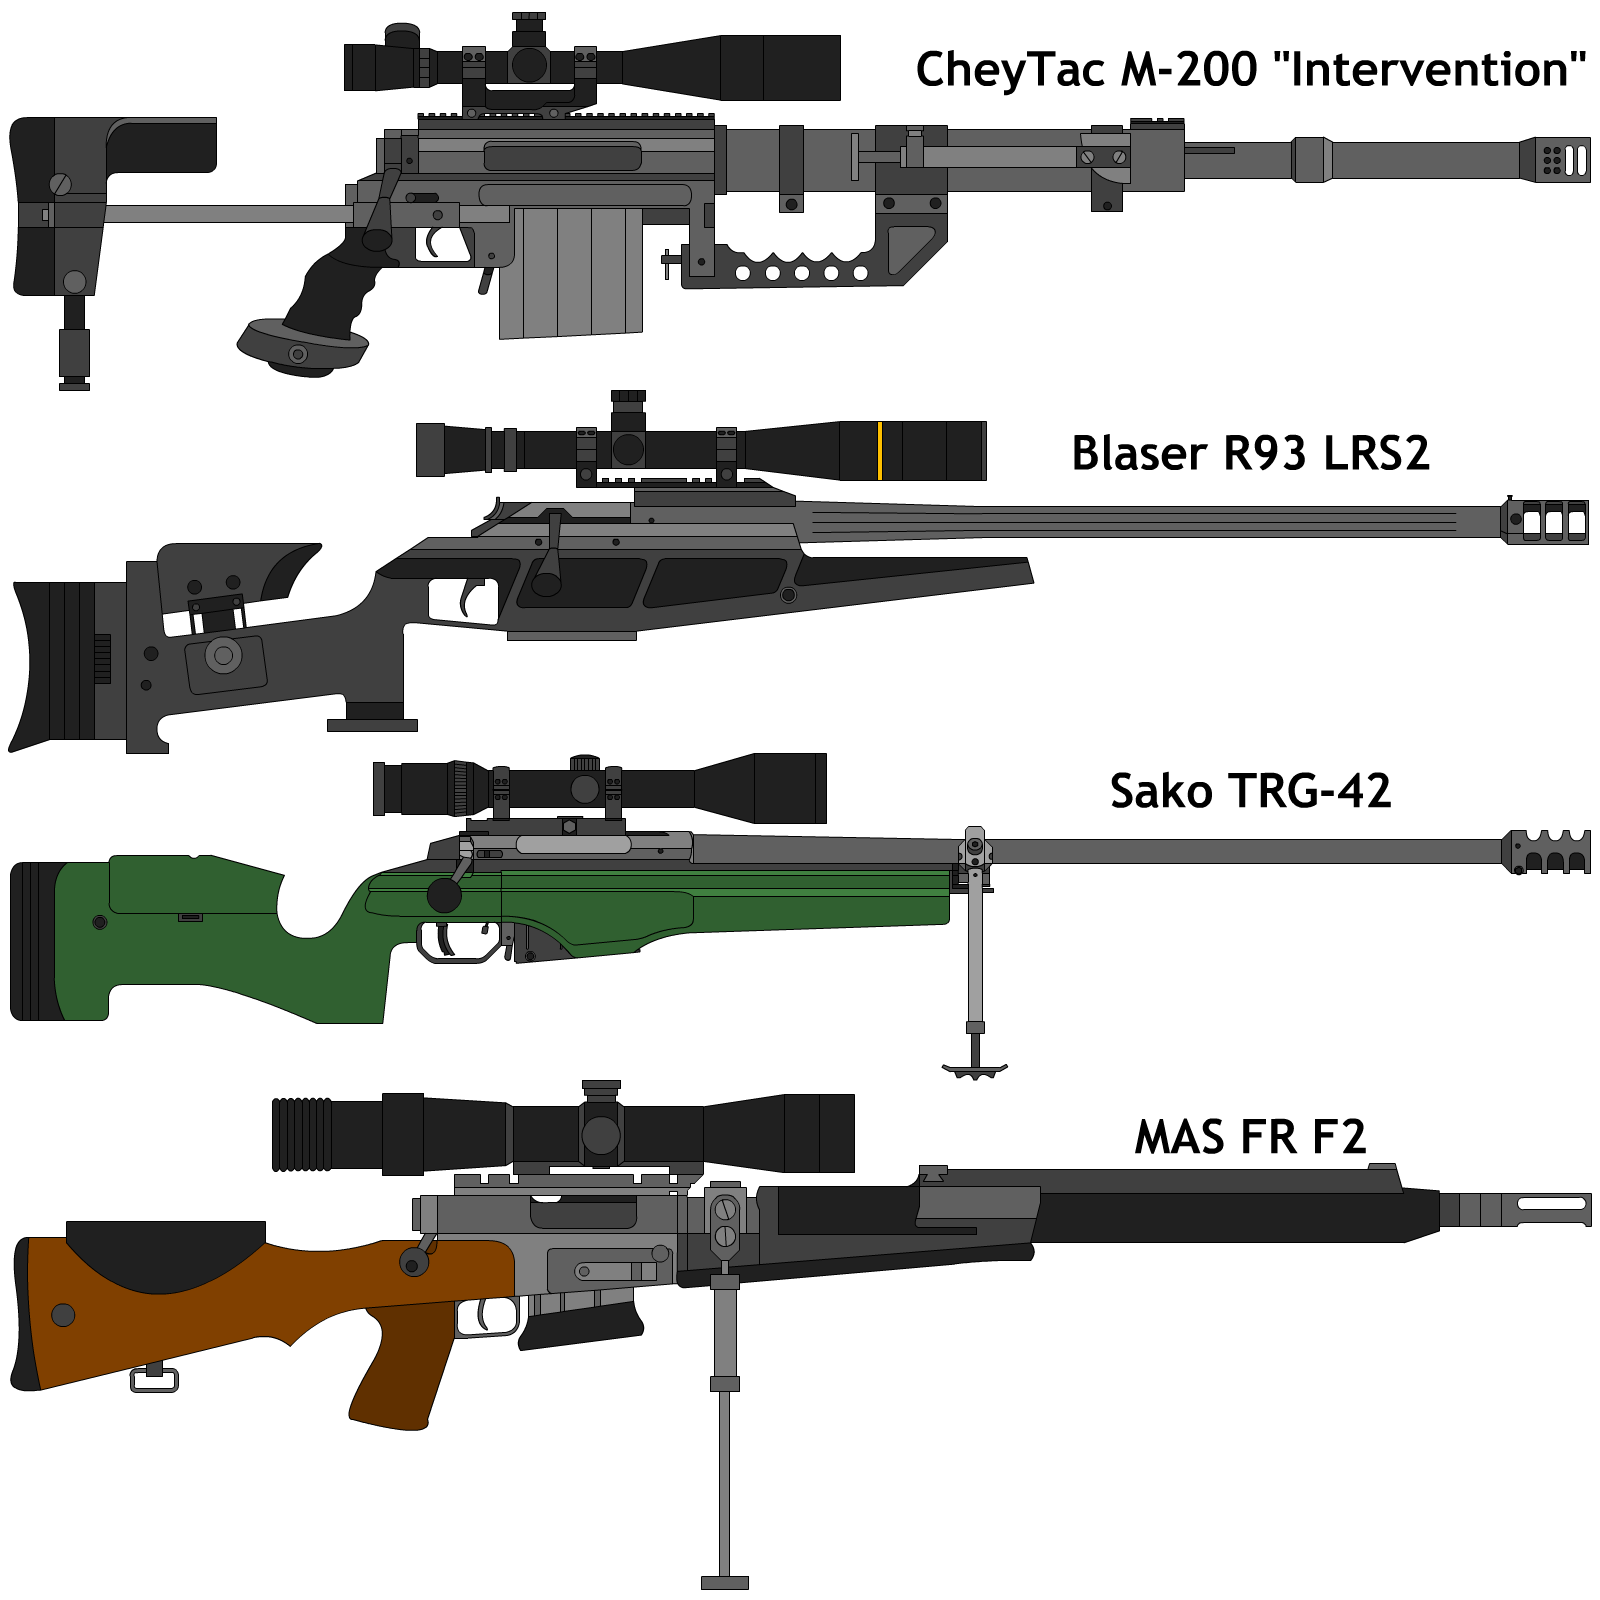 Drawn snipers bolt action rifle Sniperrifles DeviantArt by bolt action